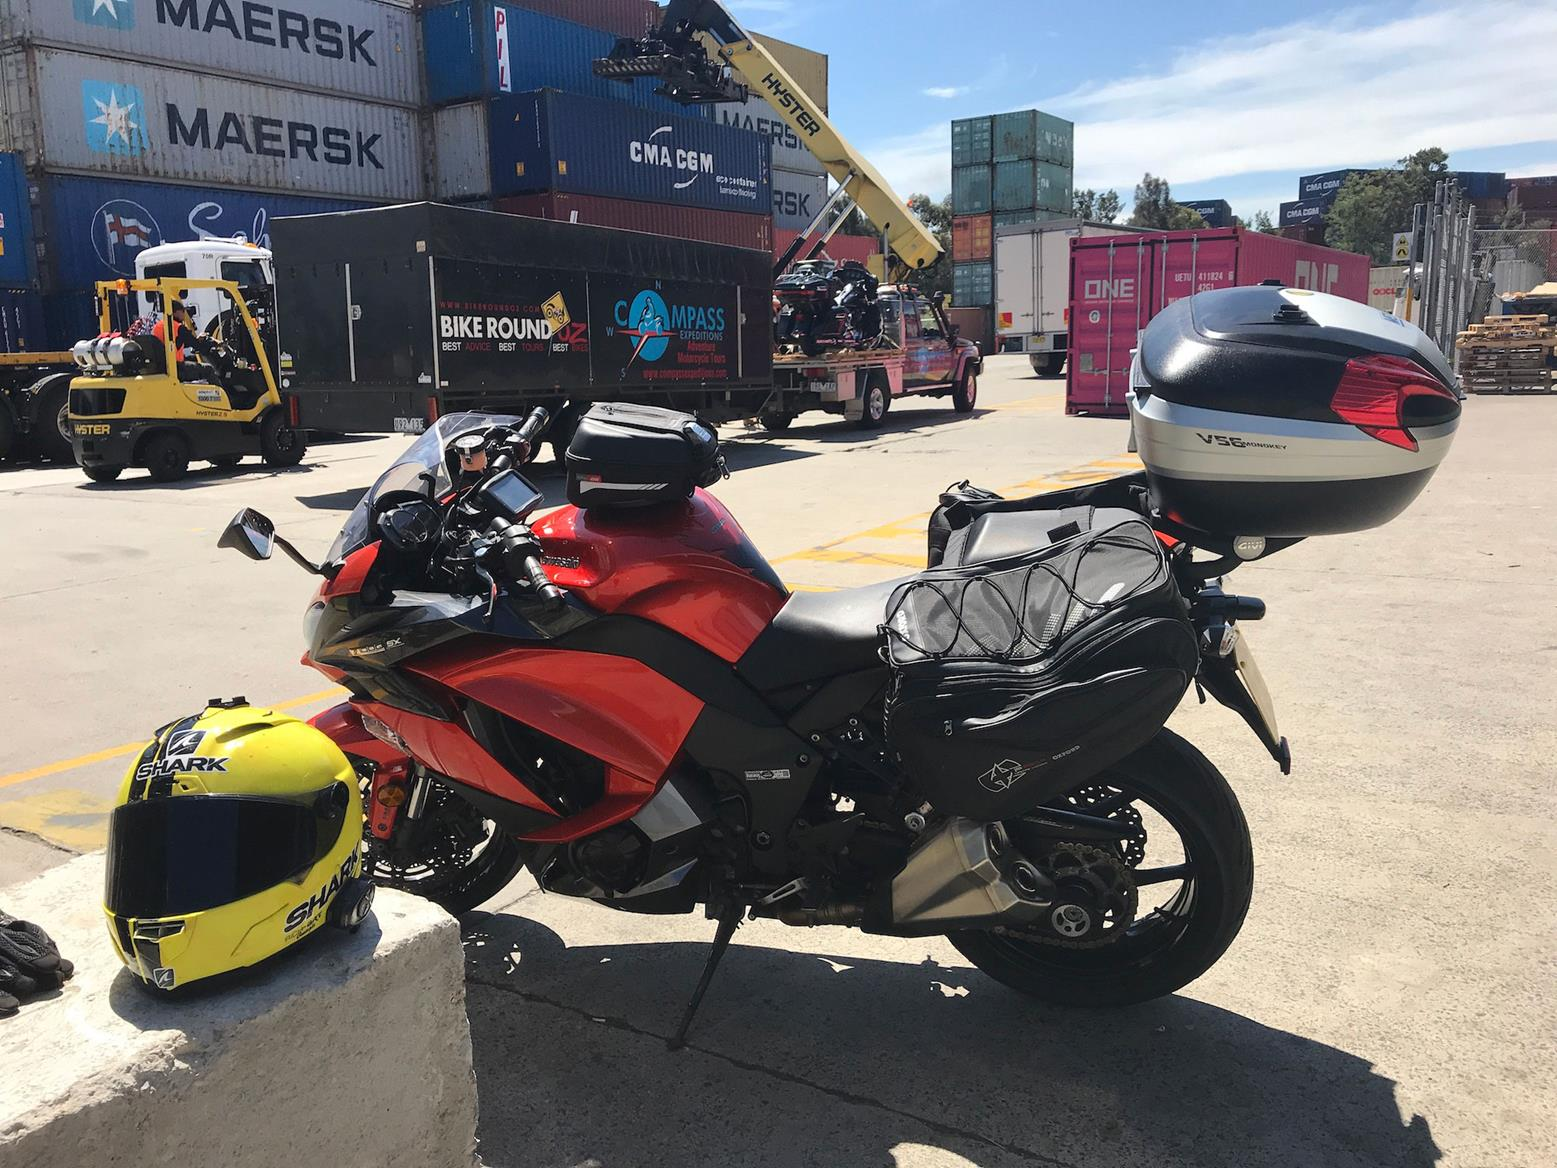 Simon Weir collecting his Kawasaki Z1000SX from the docks